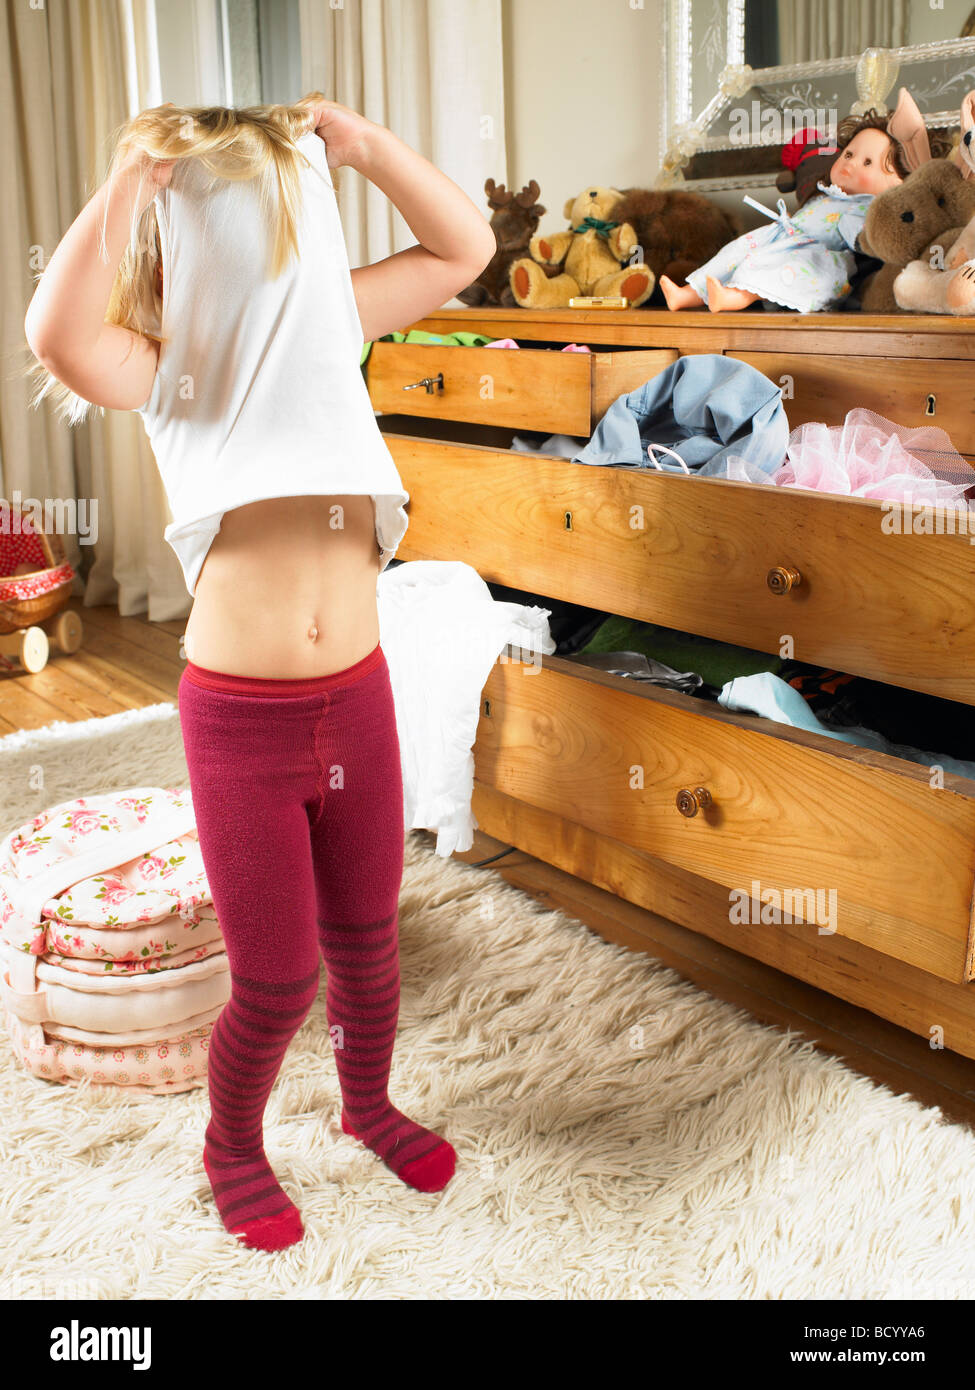 Girl changing clothes Stock Photo 25200398  Alamy